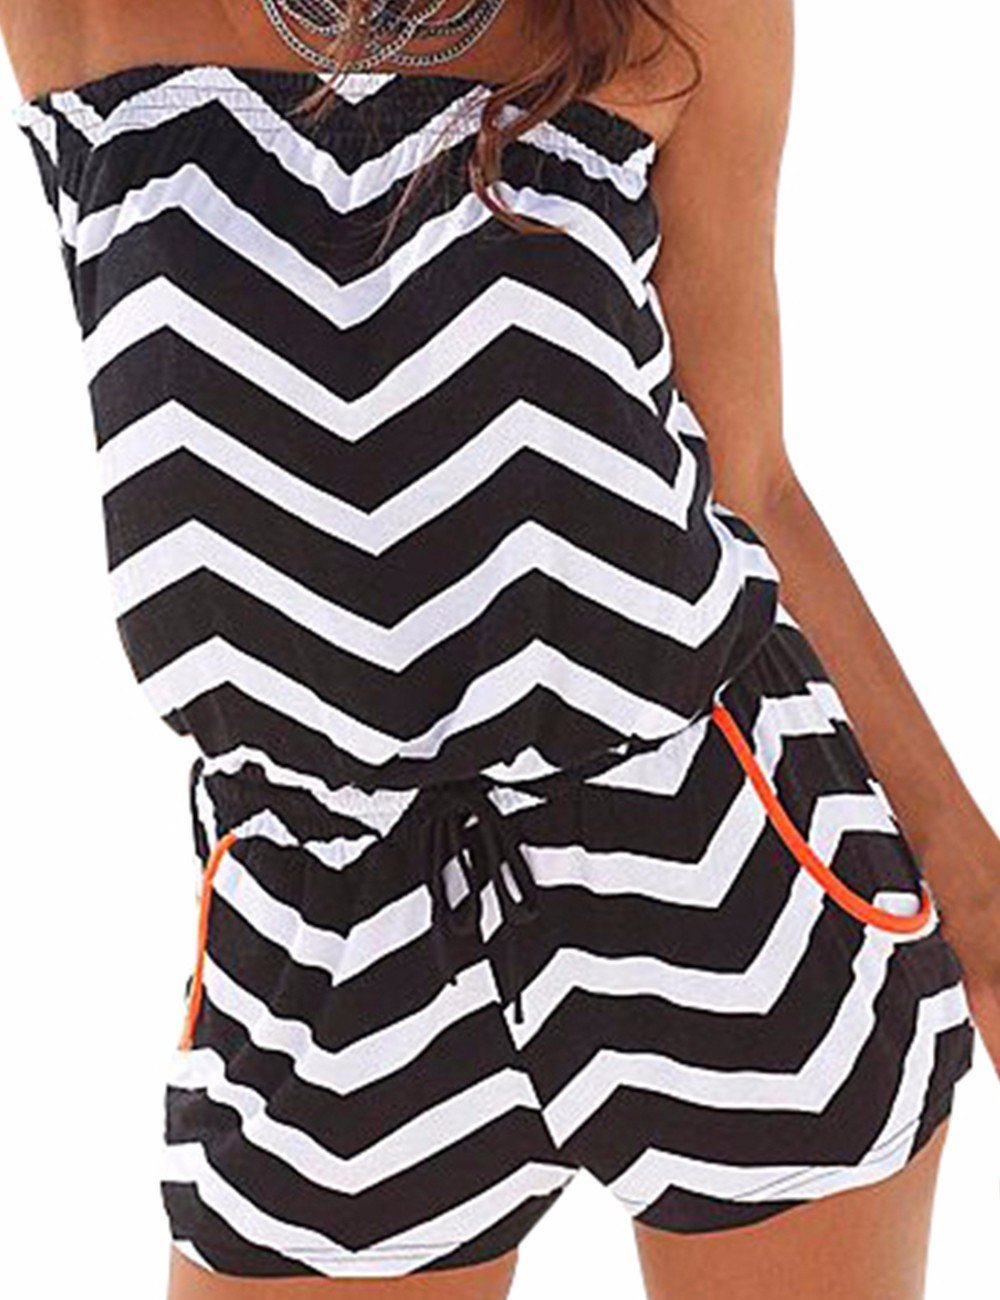 Sexyshine Women's Strapless Off Shoulder Printed Beachwear Short Rompers Jumpsuits Blackwhite,L